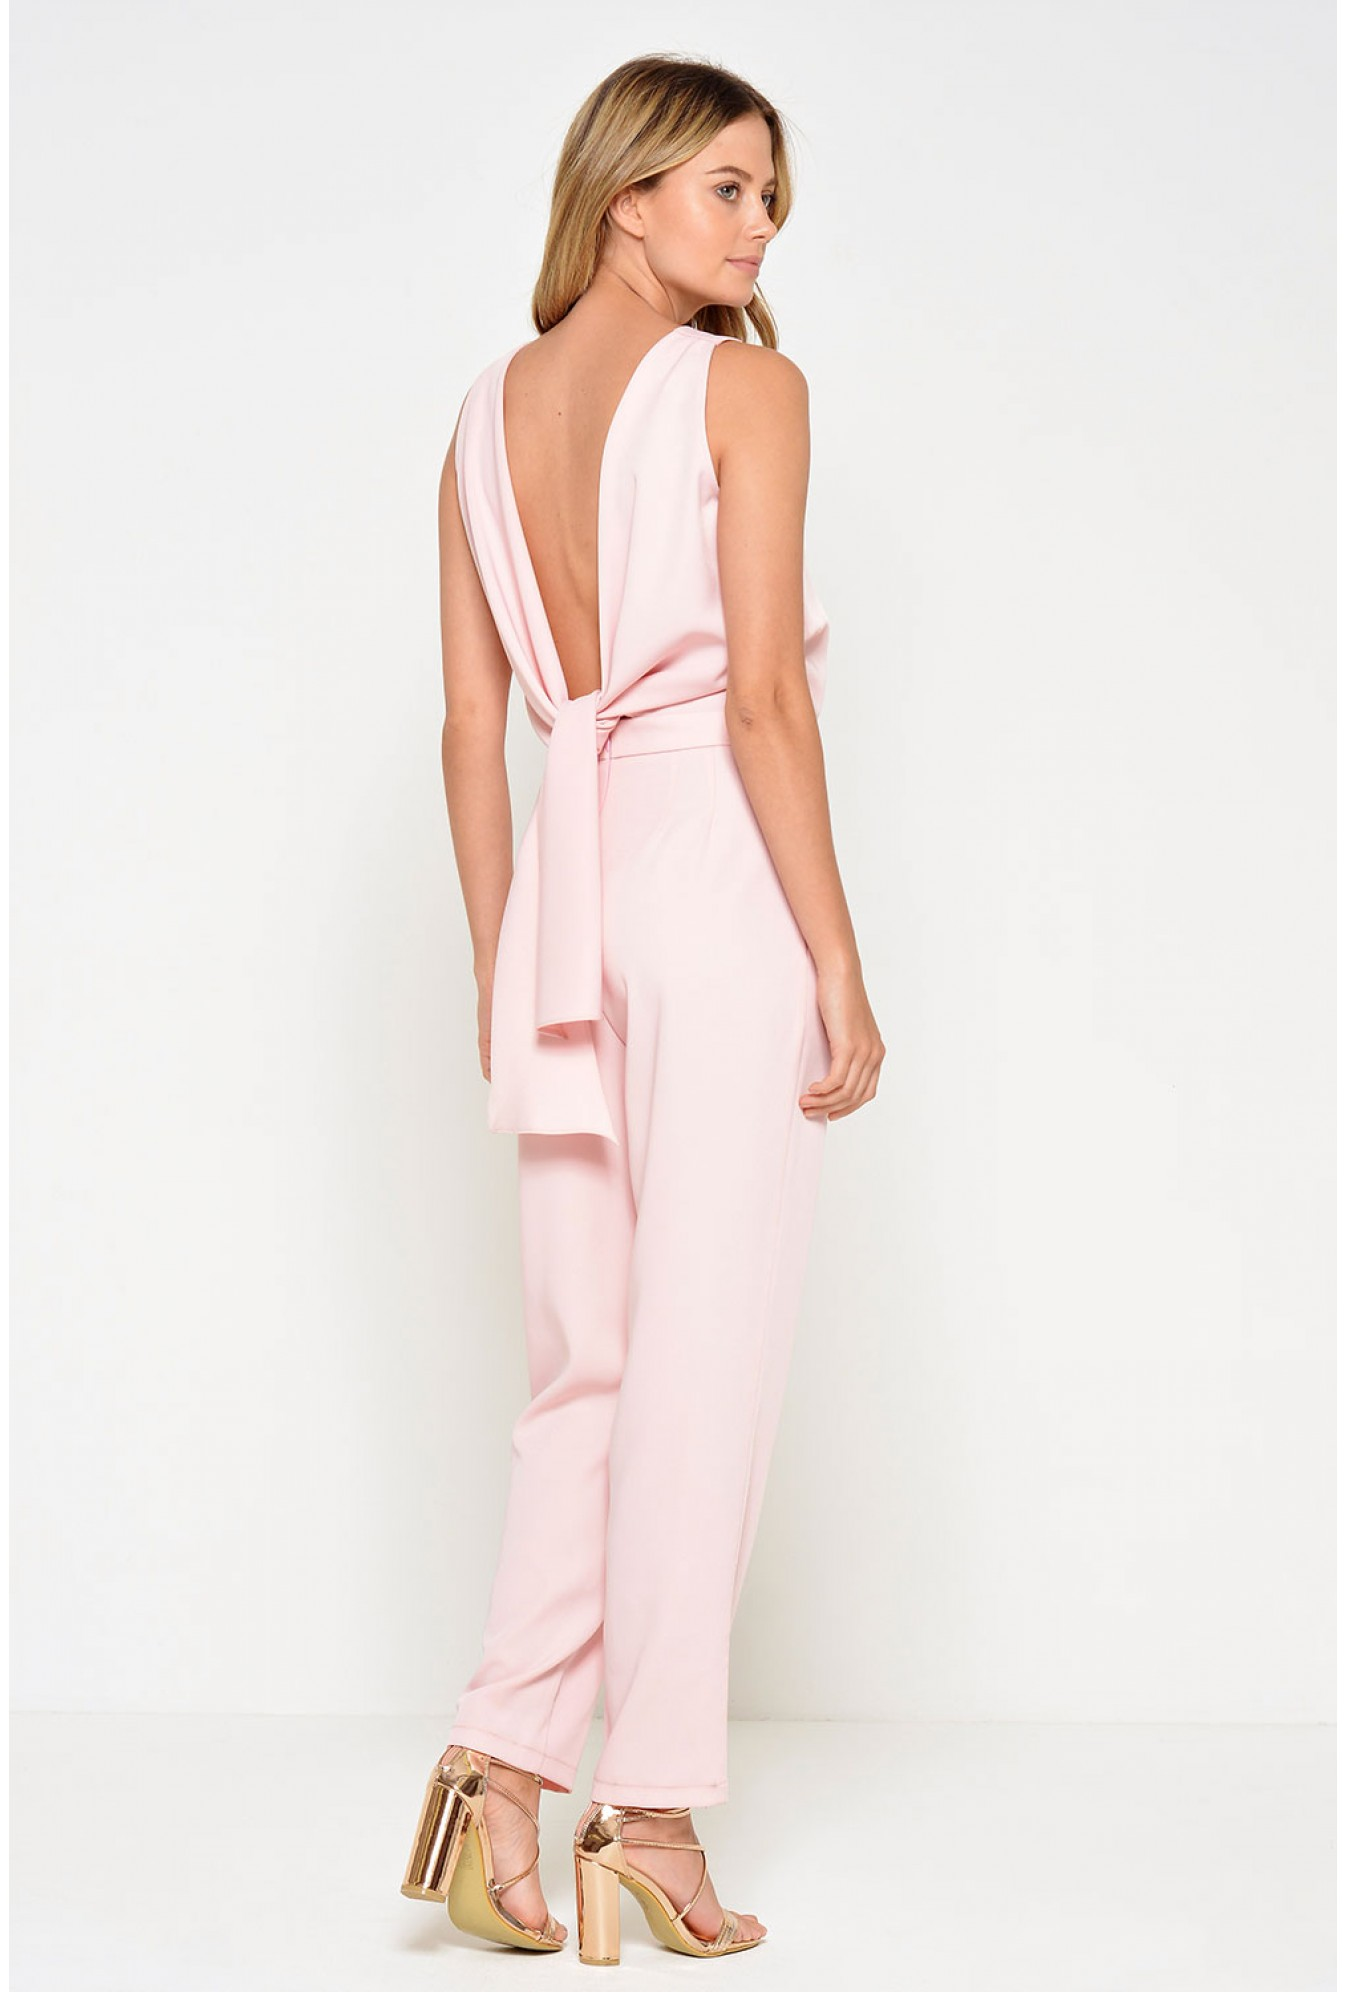 f0437f2f16b7 Marc Angelo Kelly Knot Back Jumpsuit in Blush